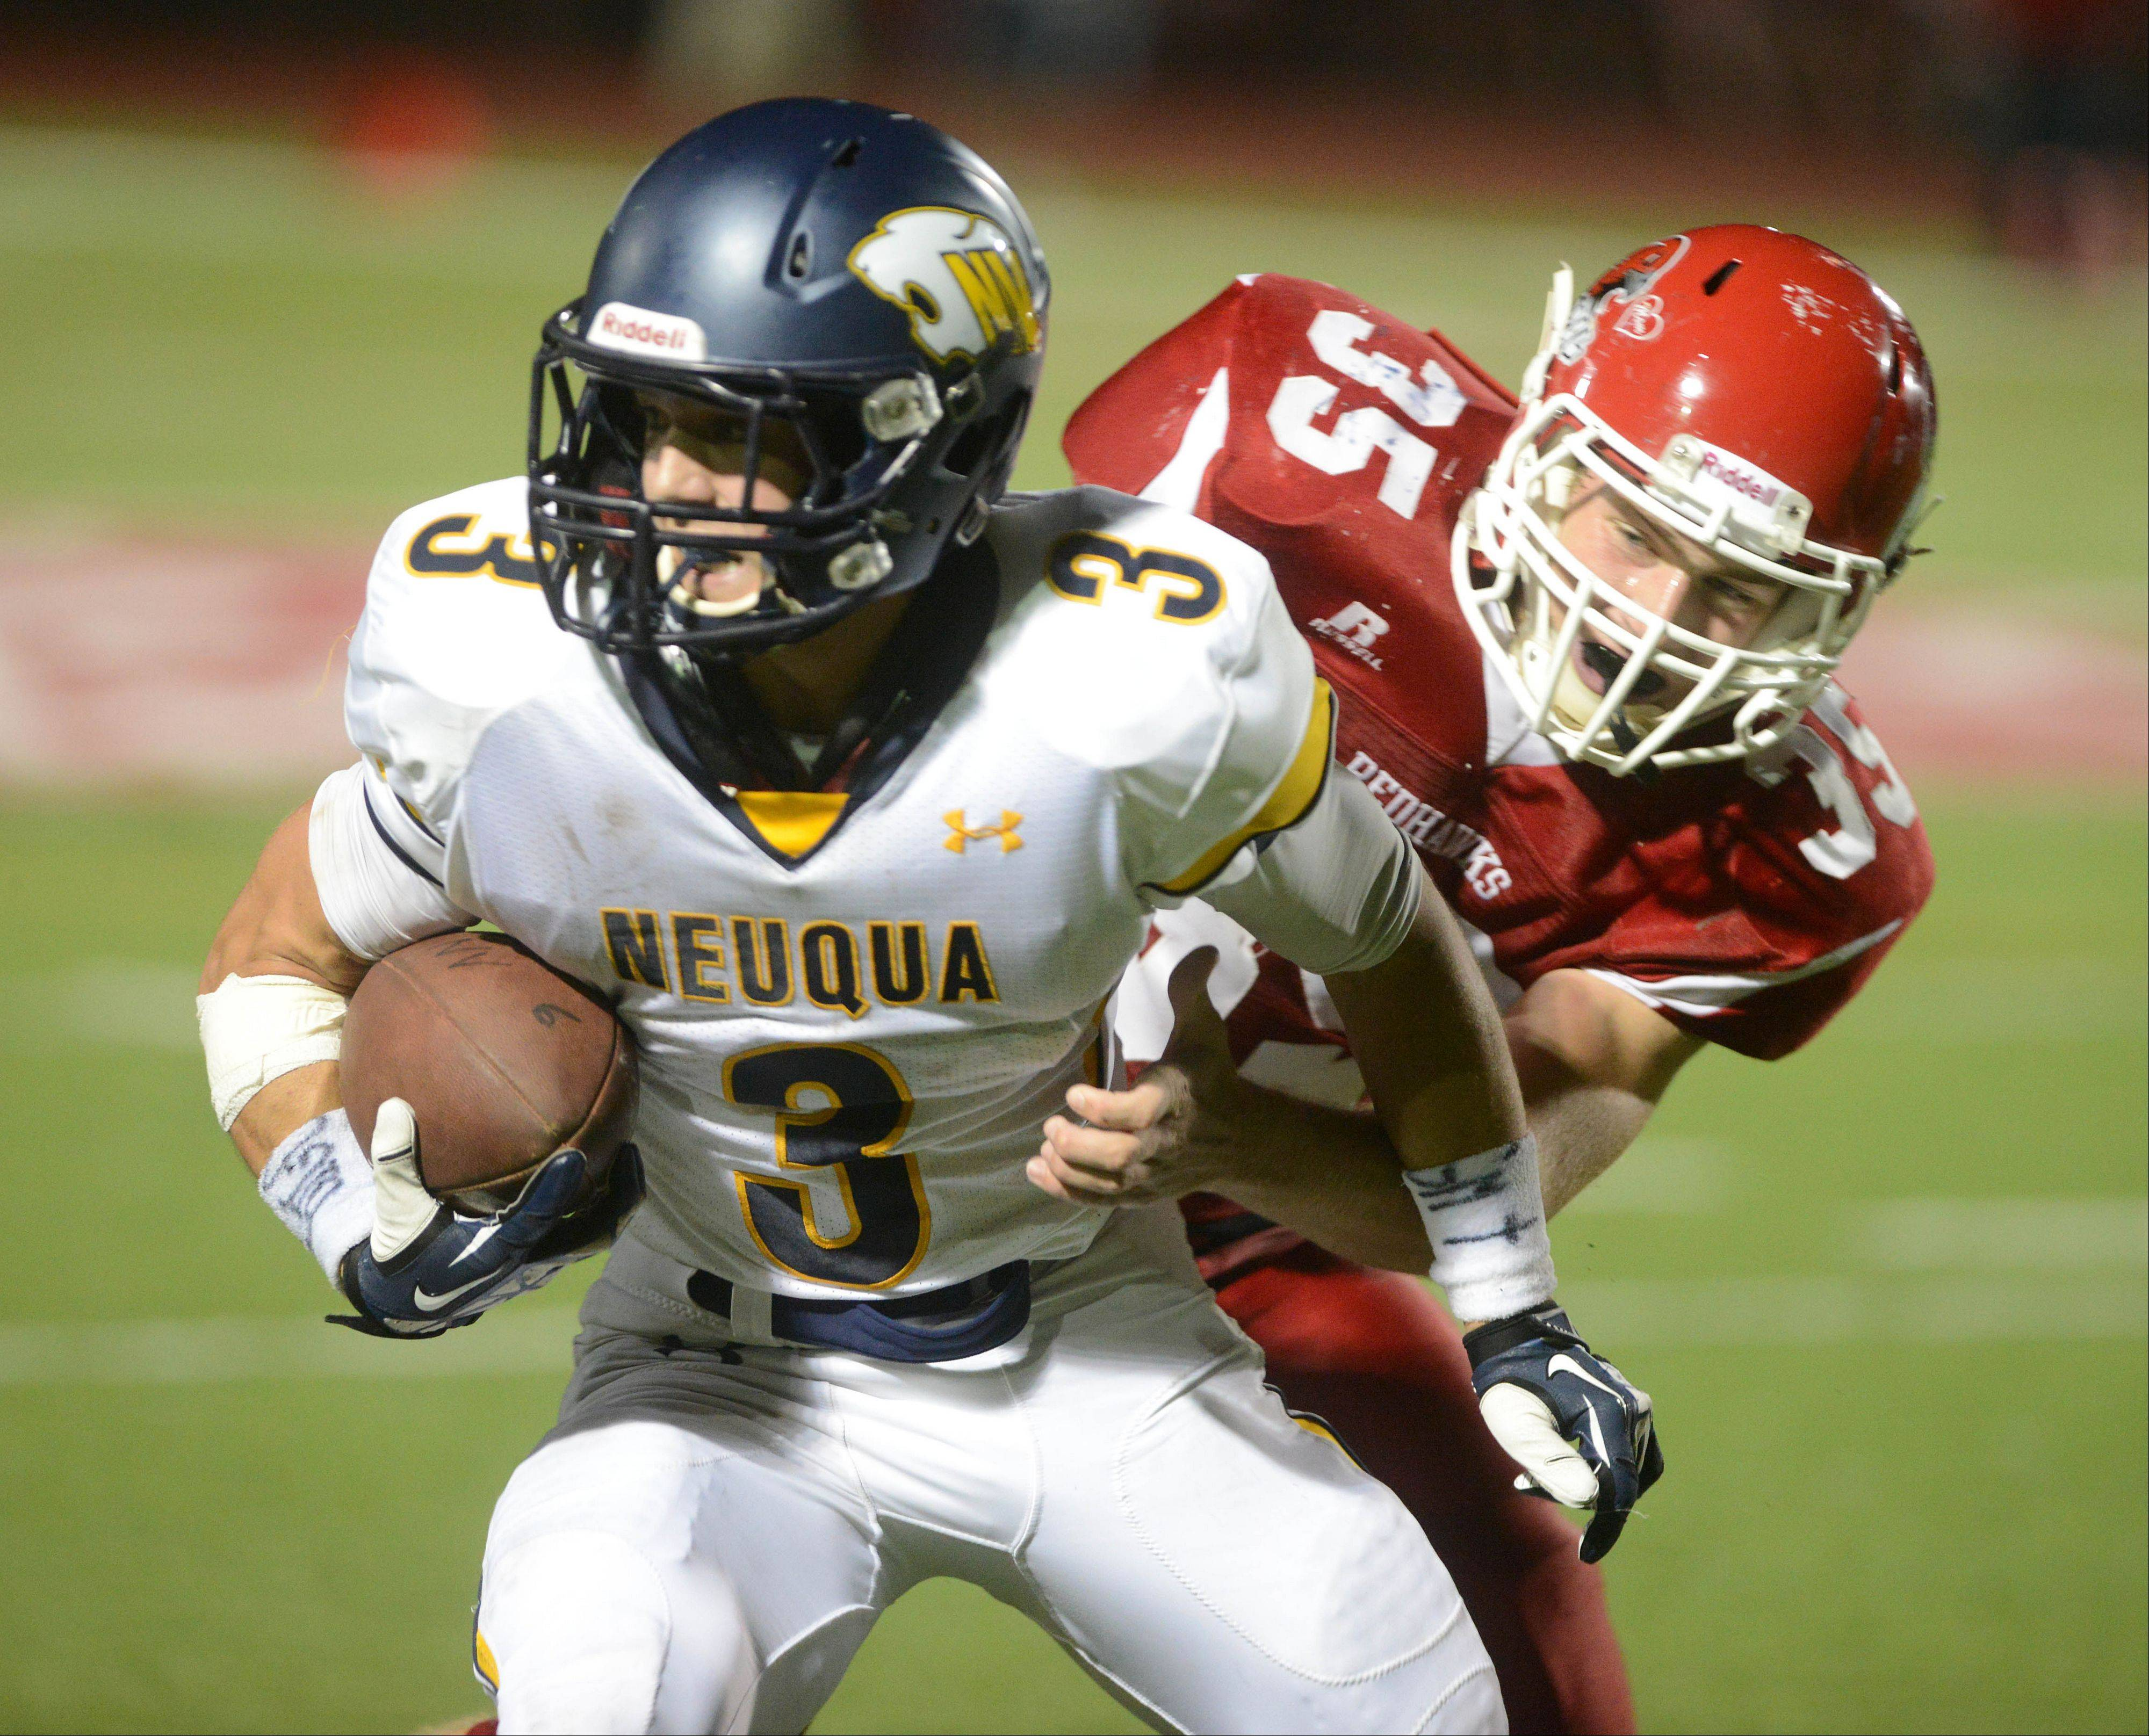 Mikey Dudek,left, of Neuqua Valley is pulled down by Dan Delgrosso of Naperville Central.